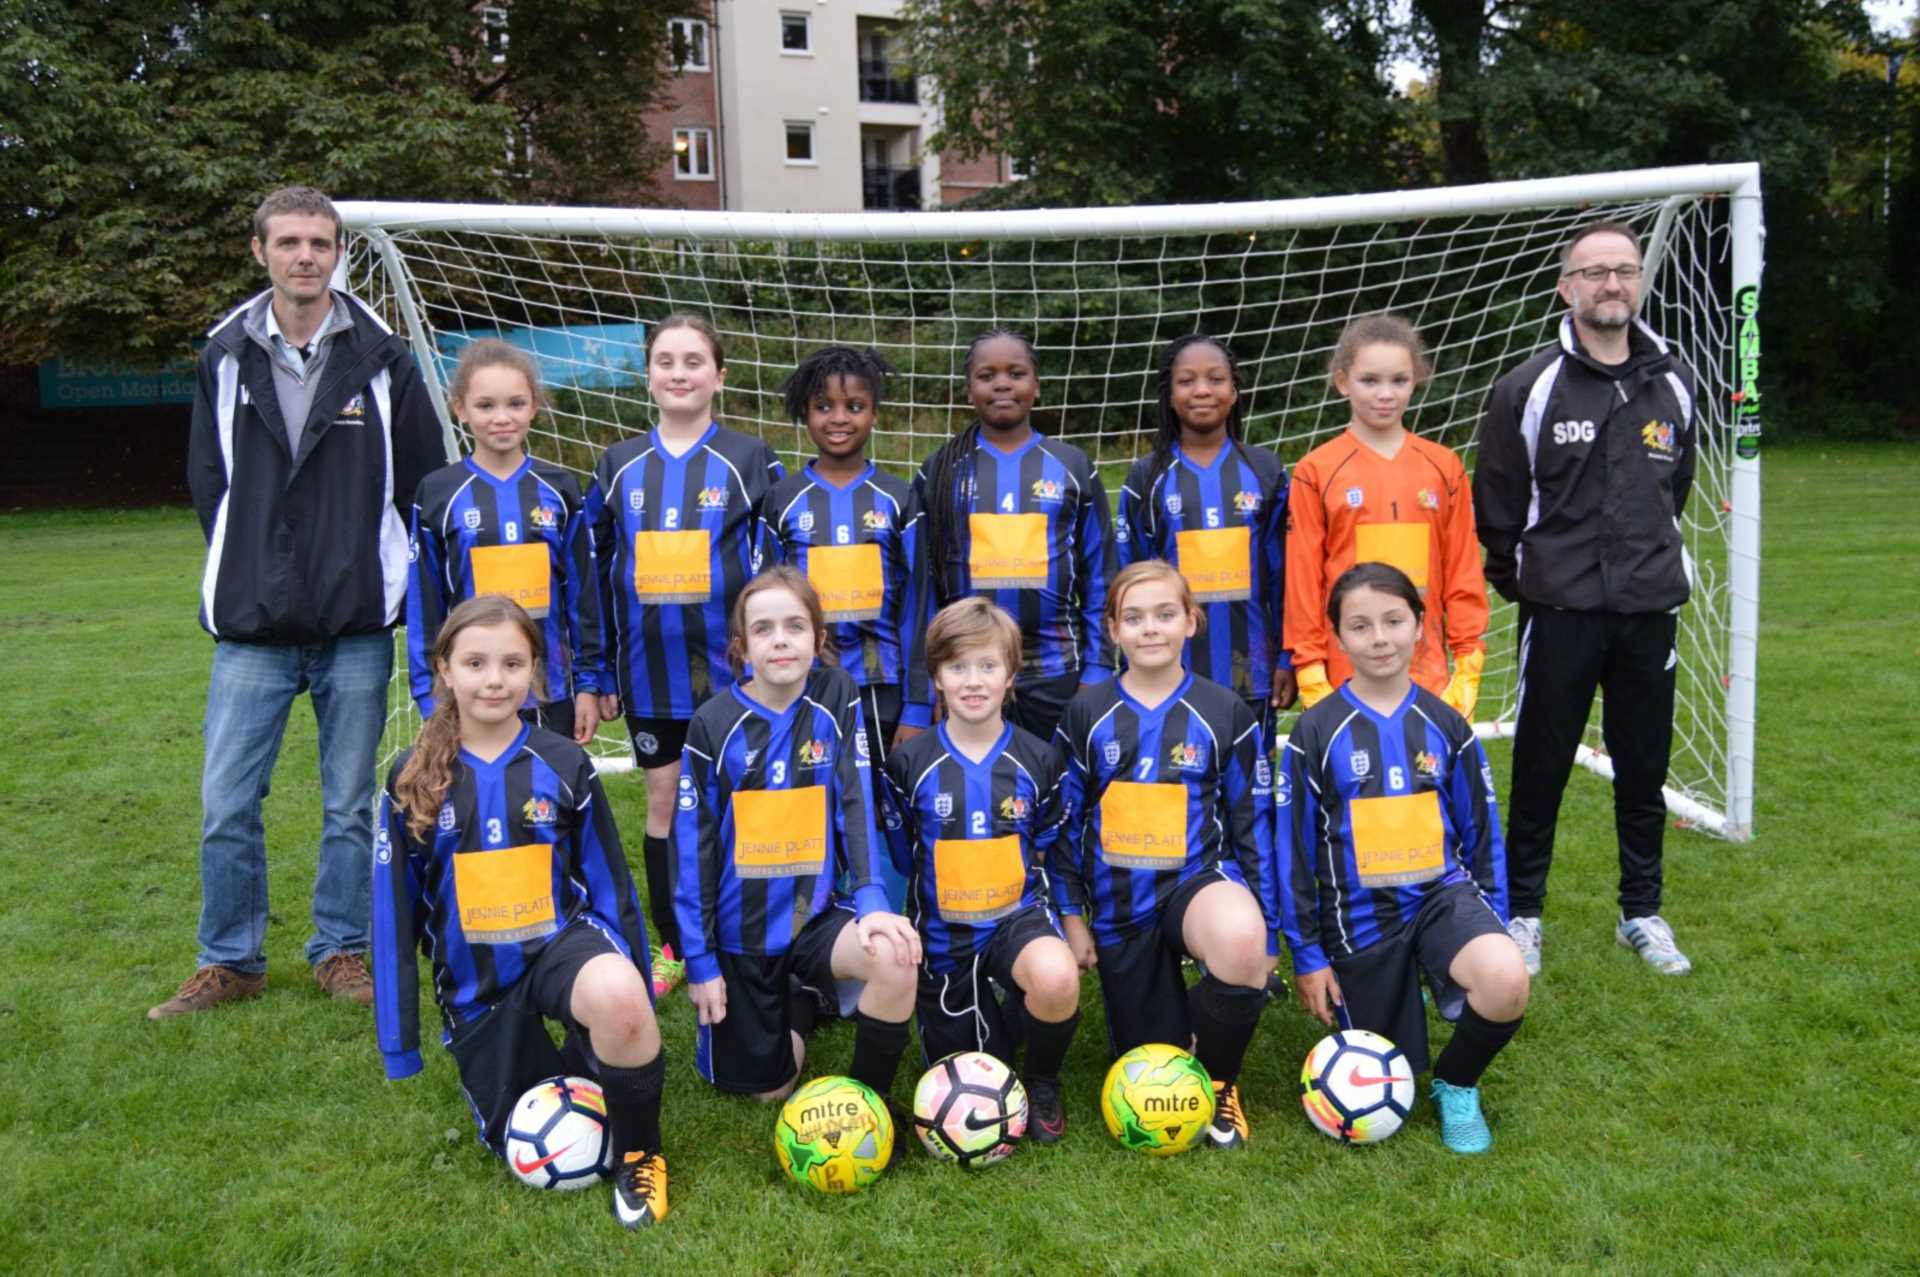 PRESTWICH MARAUDERS SAPPHIRES TO SHINE IN SEASON WITH NEW SPONSOR